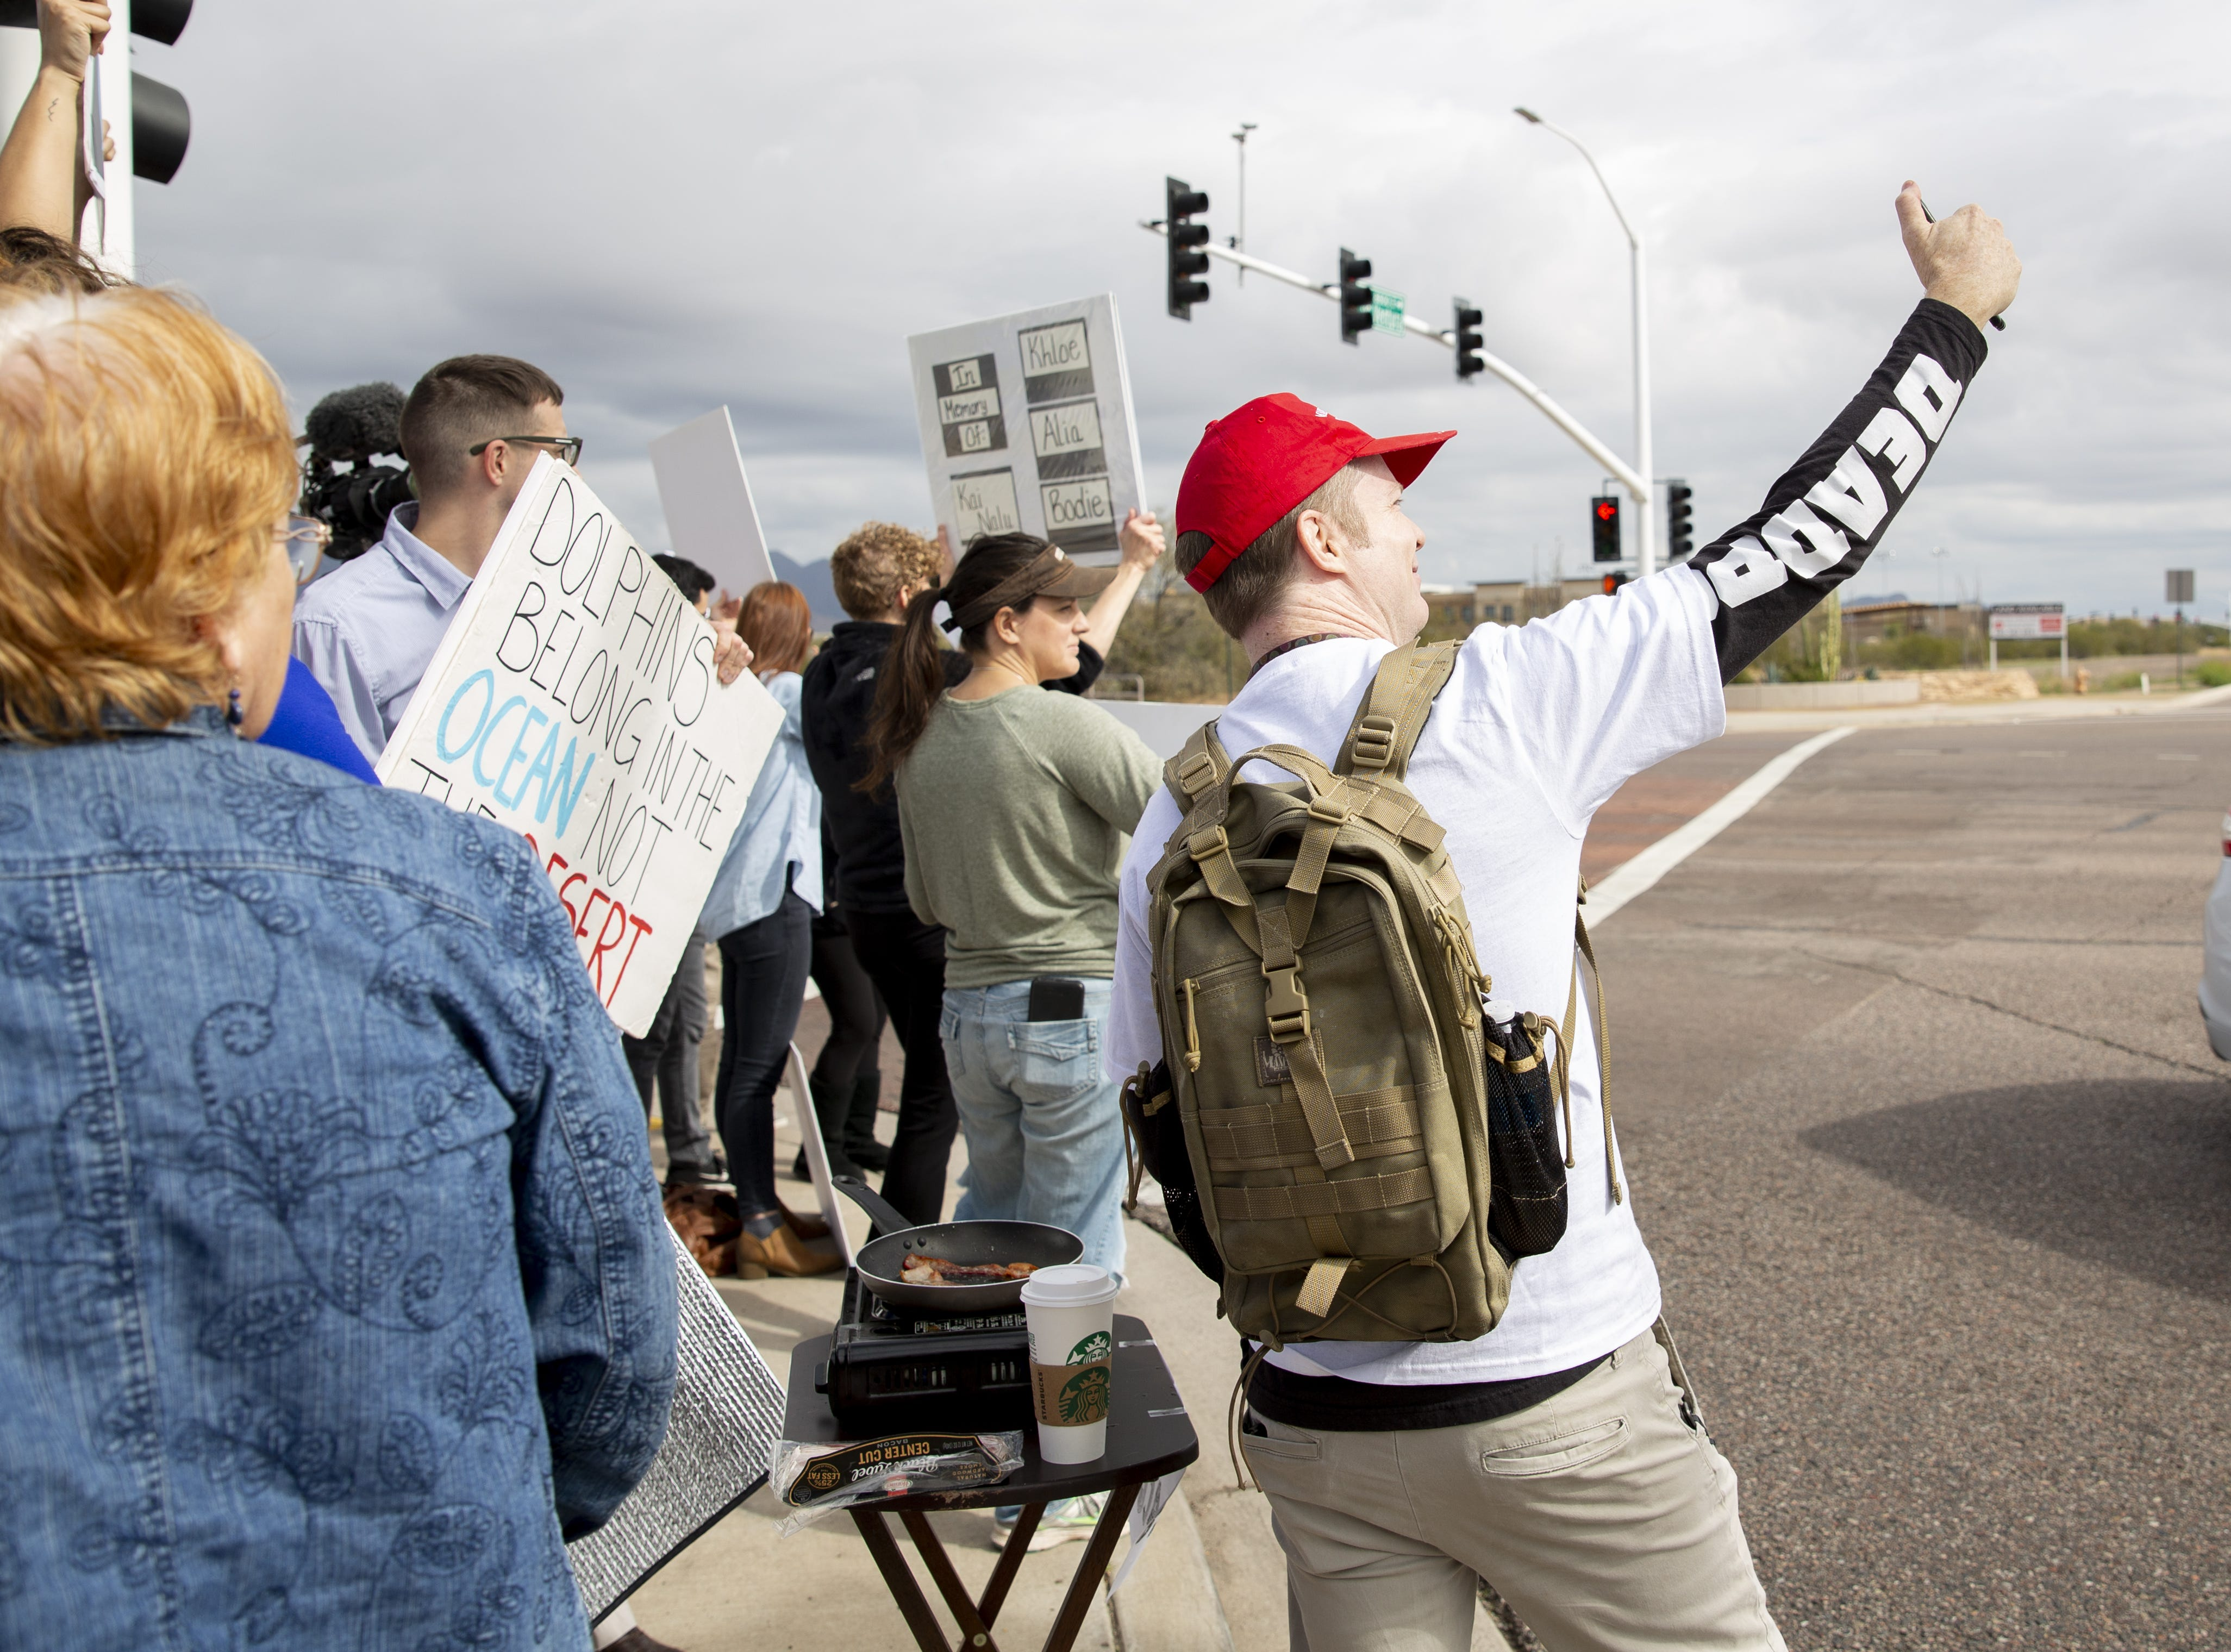 A counter-protester, right, at the Dolphinaris protest takes a selfie at the intersection of E. Via de Ventura and N. Pima Road in Scottsdale on Feb. 2, 2019.